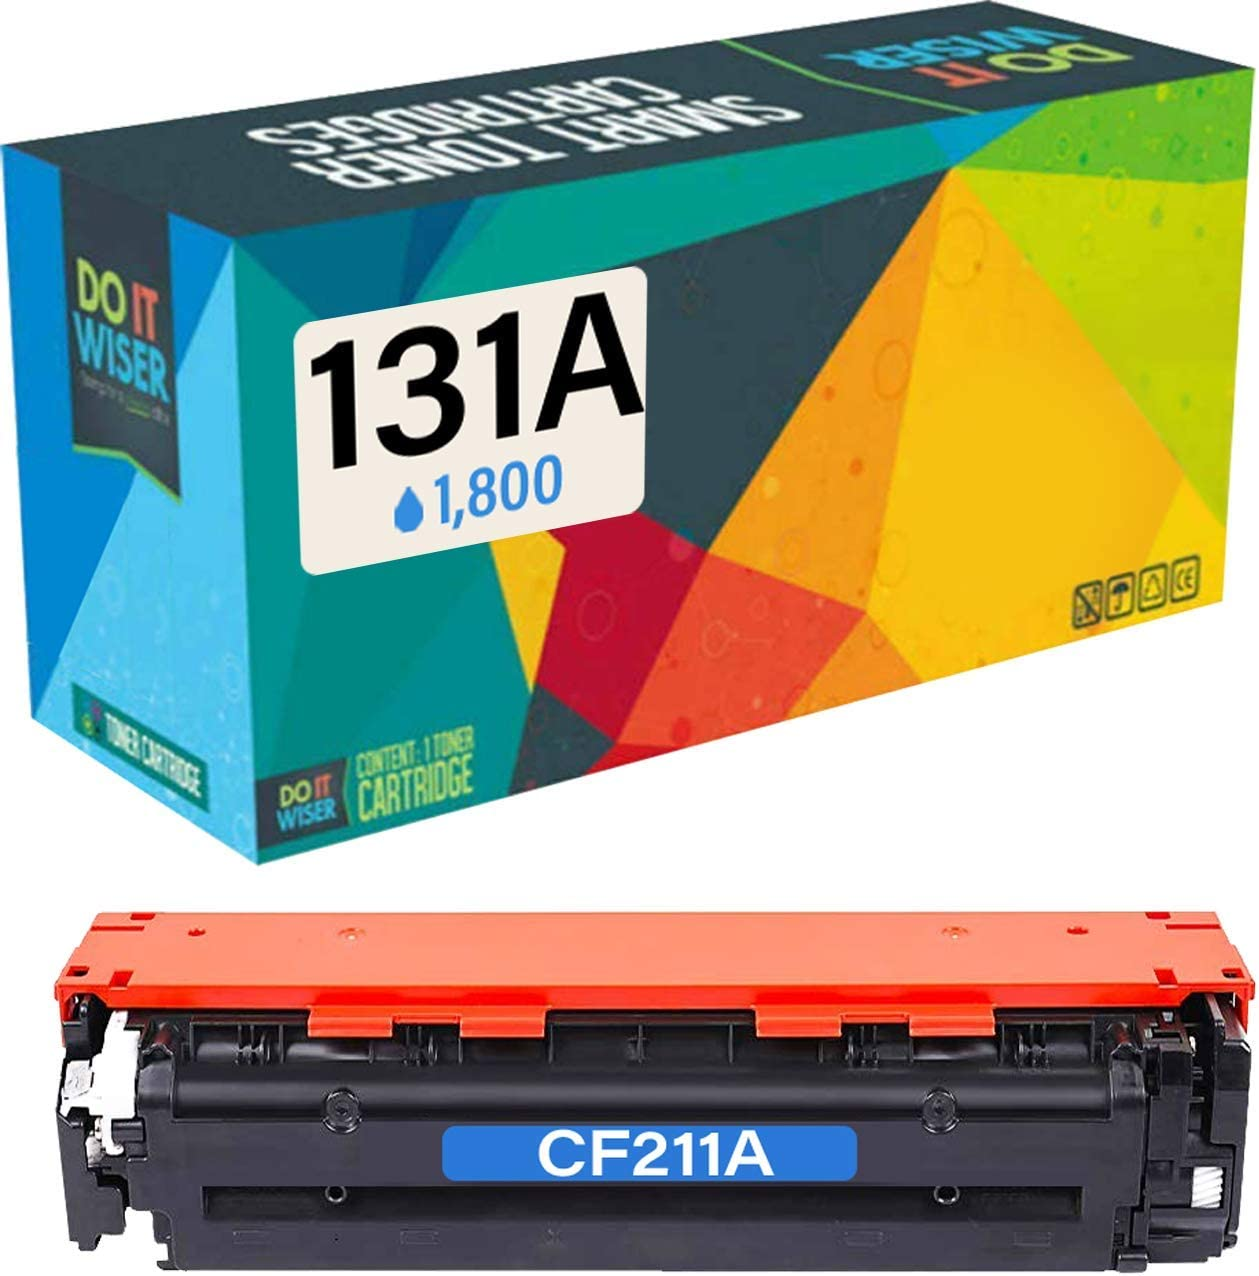 Do it Wiser Compatible Toner Cartridge Replacement for HP 131A CF211A CF211X HP Laserjet Pro 200 Color M251nw MFP M276nw M251n M276nw Canon MF8280Cw 7100CN 7110CW LBP7100C (Cyan)